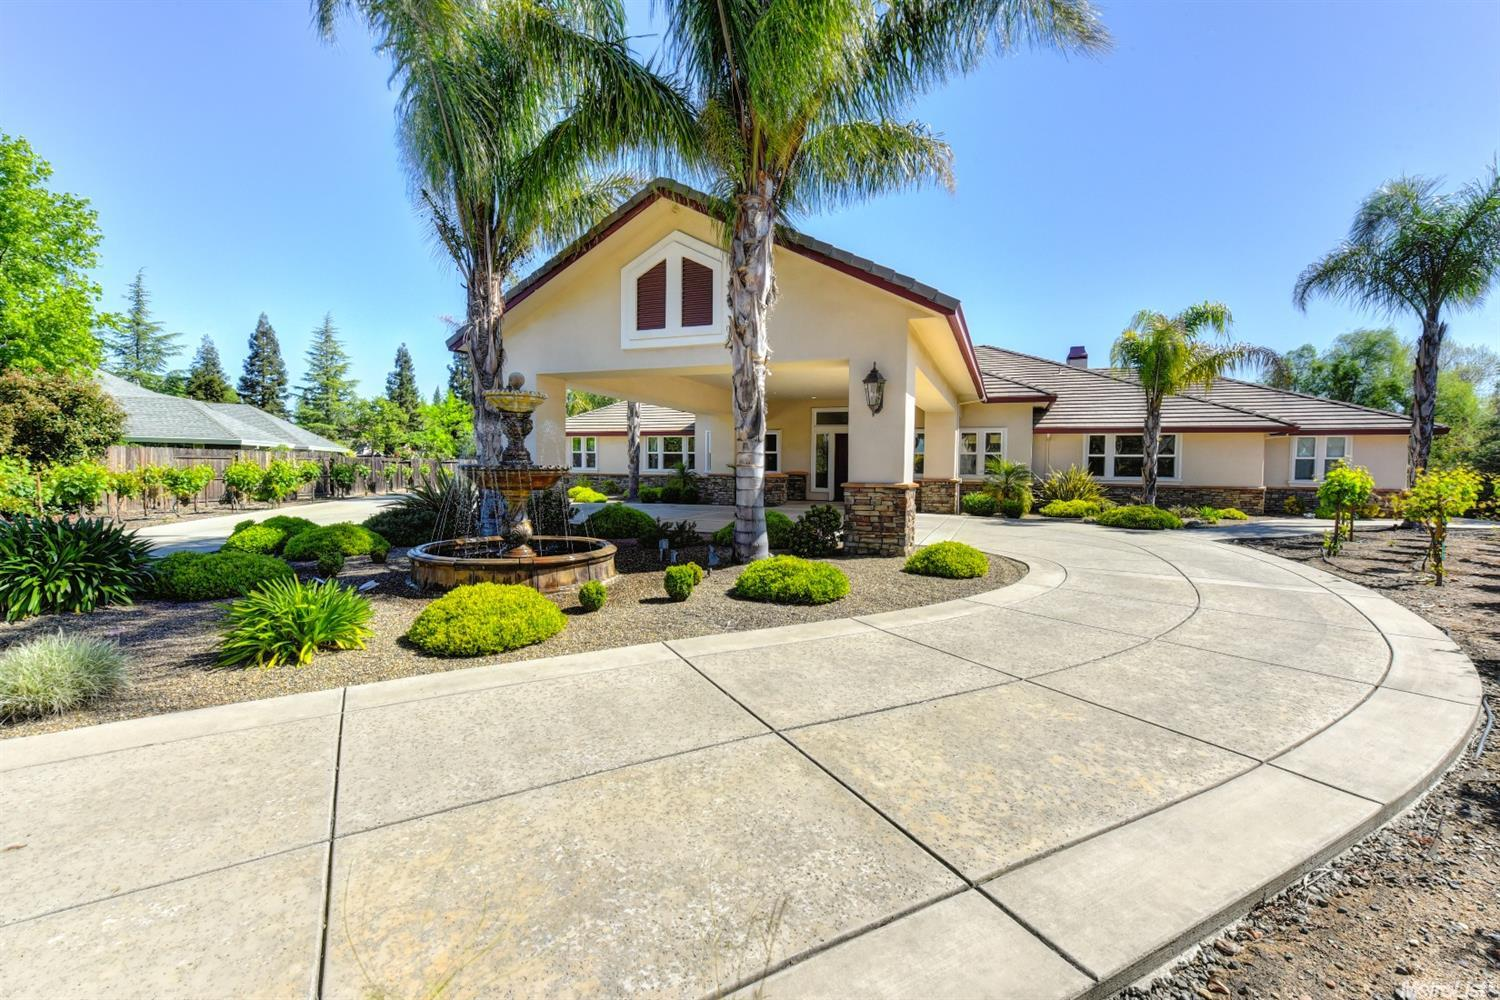 205 Golden Hill Ct, Roseville, CA